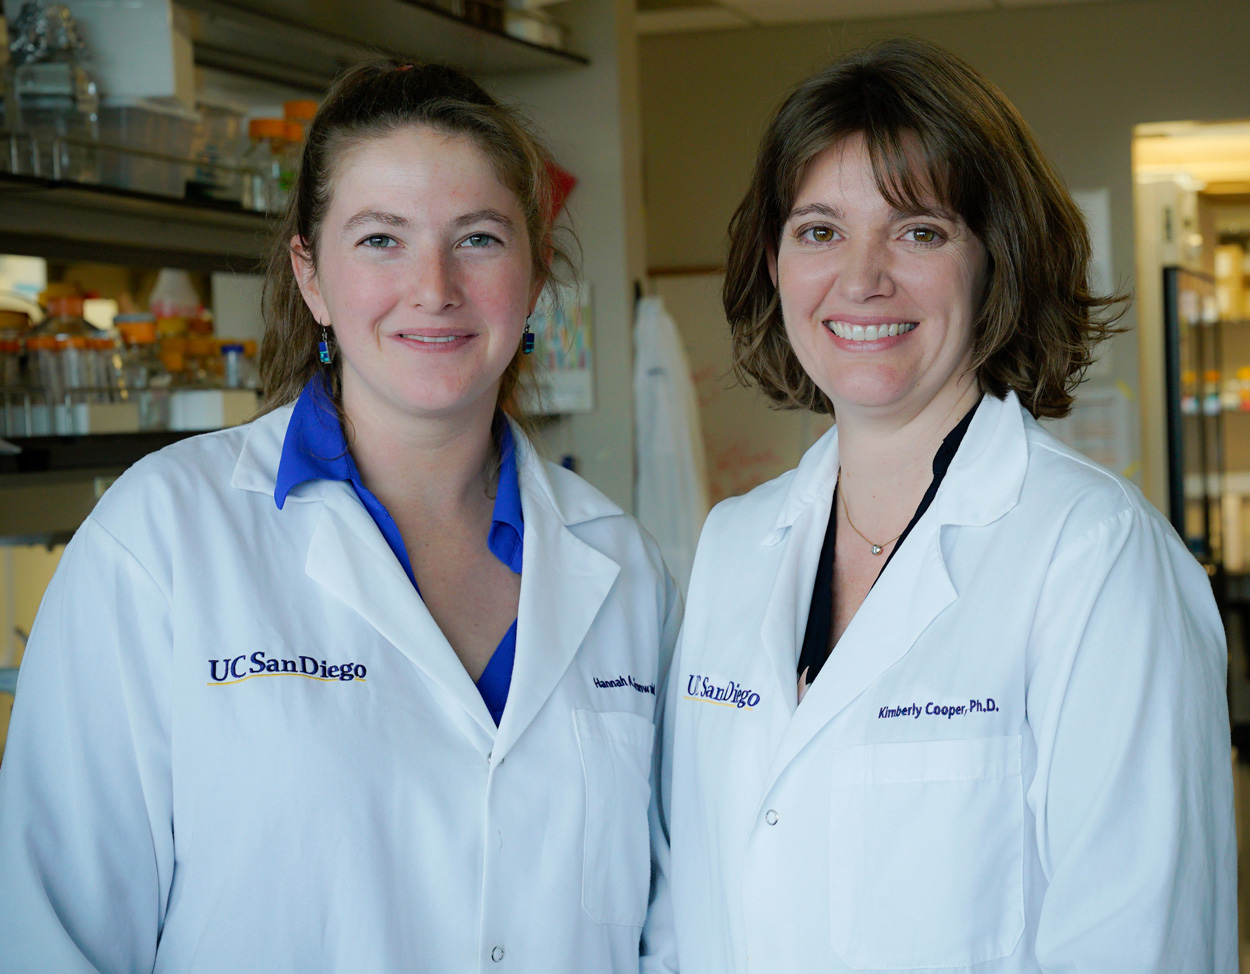 Hannah Grunwald and Assistant Professor Kimberly Cooper wearing lab coats inside Cooper's lab